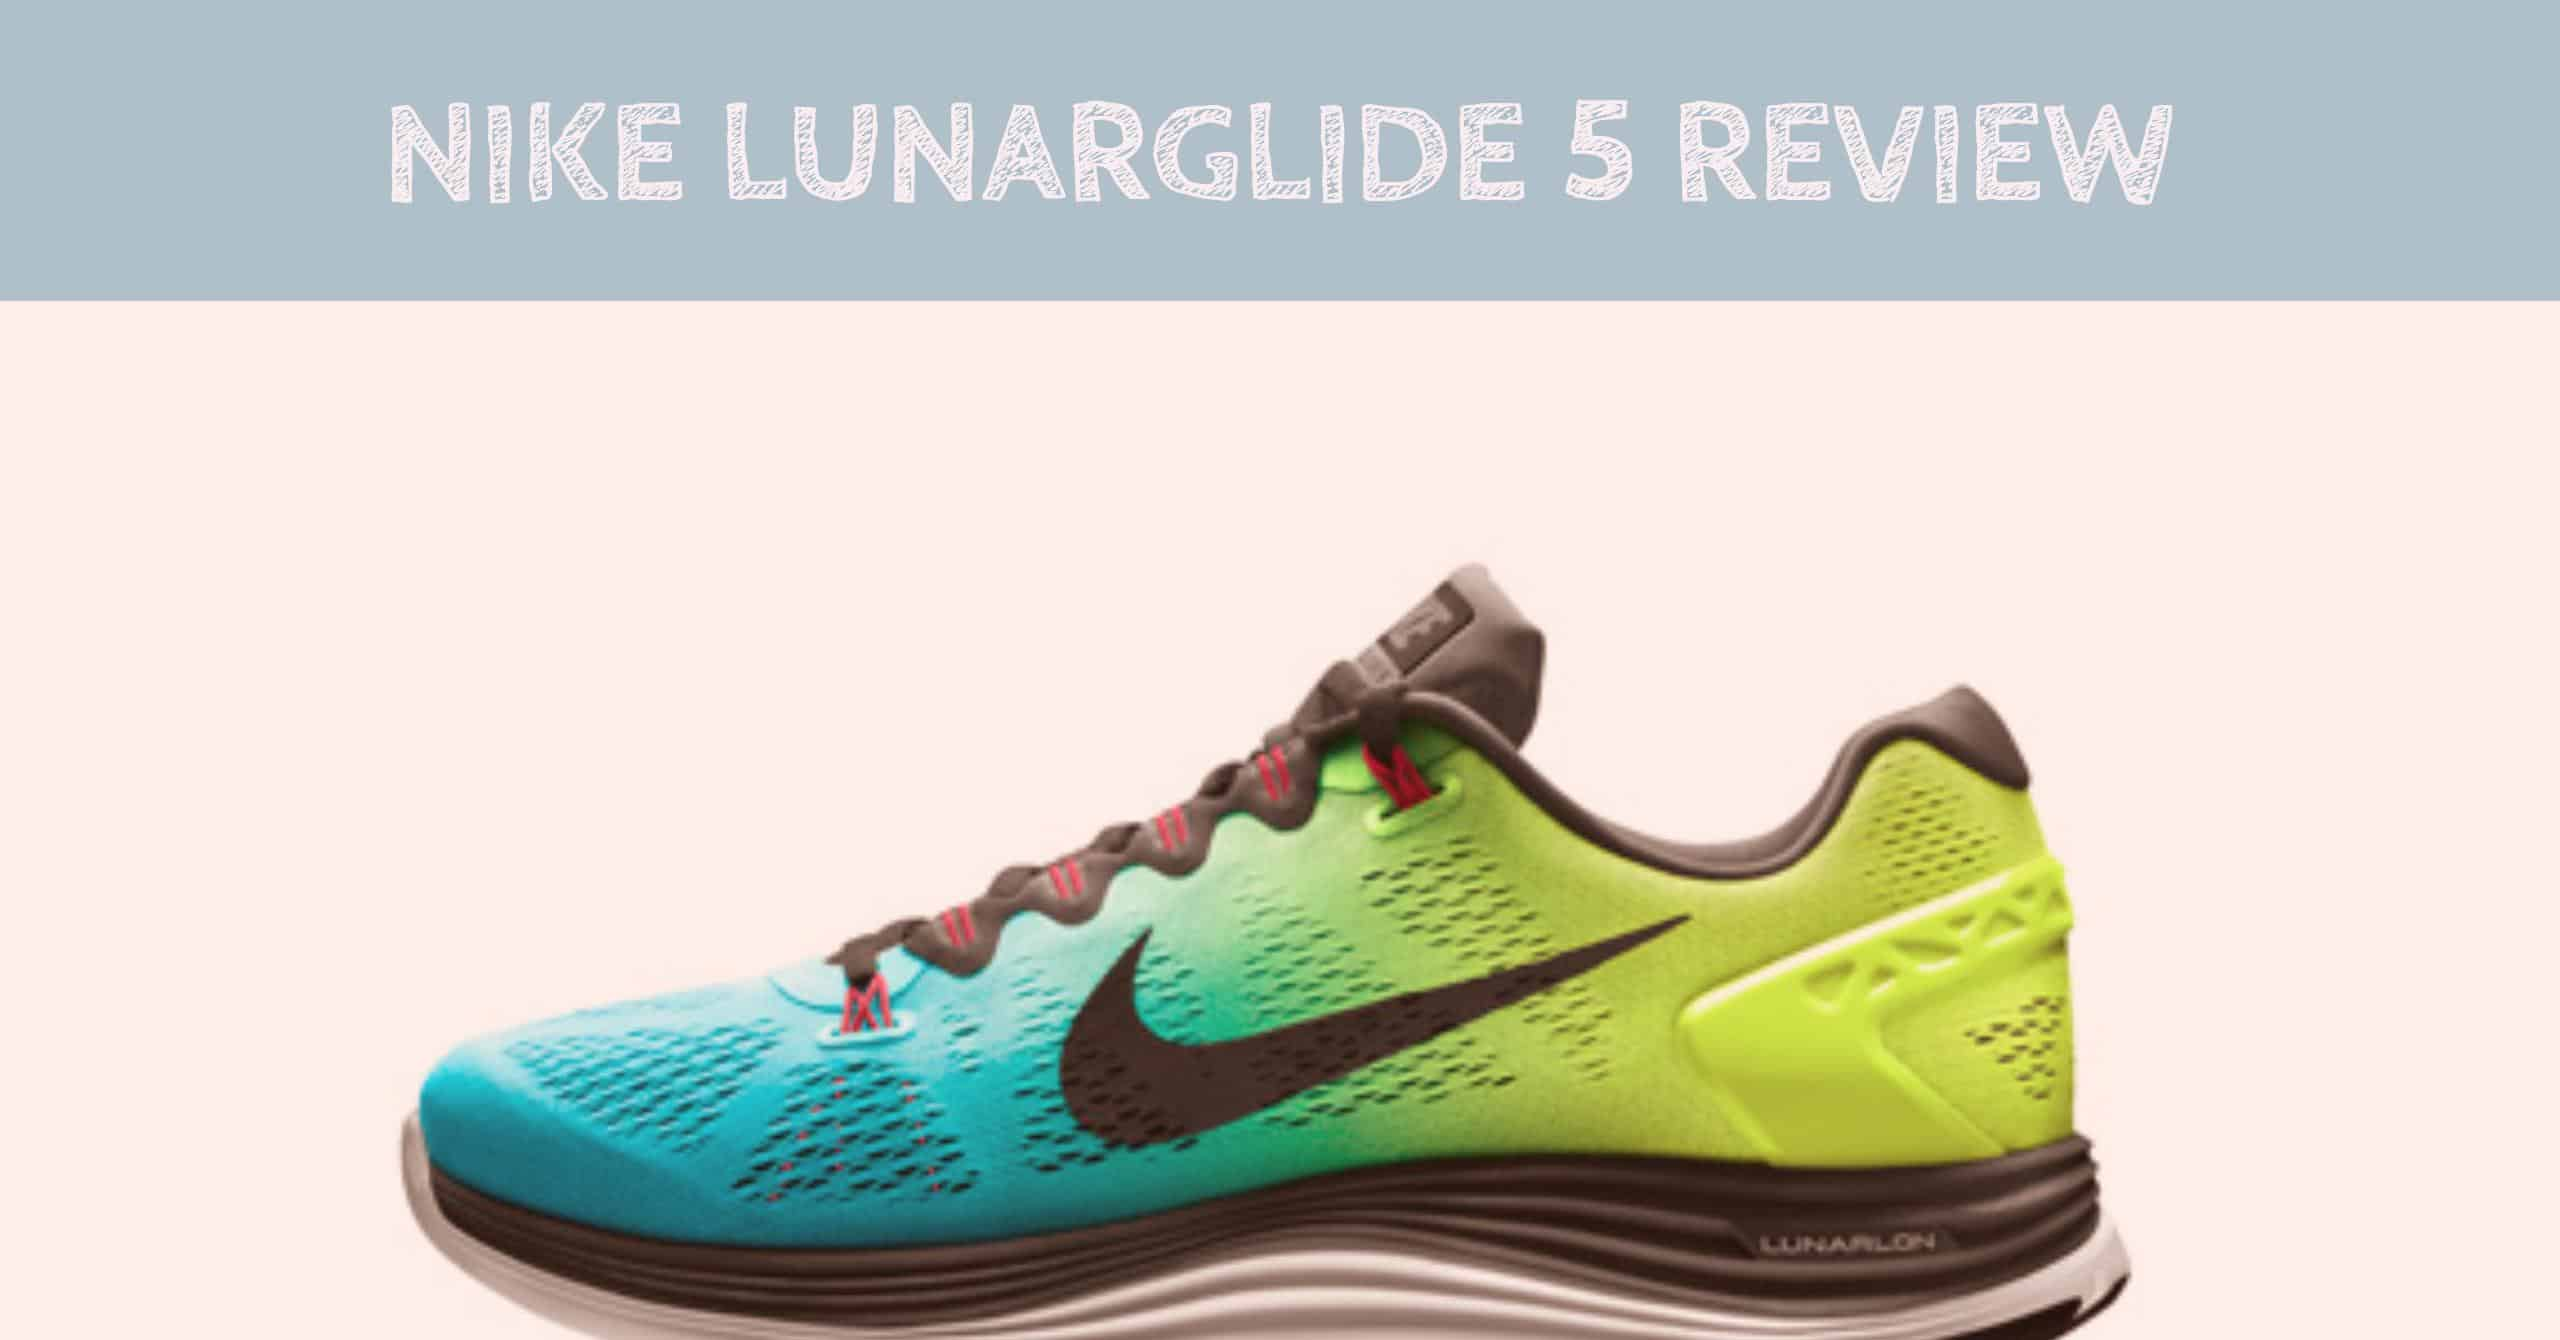 We detail one of the most popular Nike running shoes - our Nike Lunarglide 5 Review